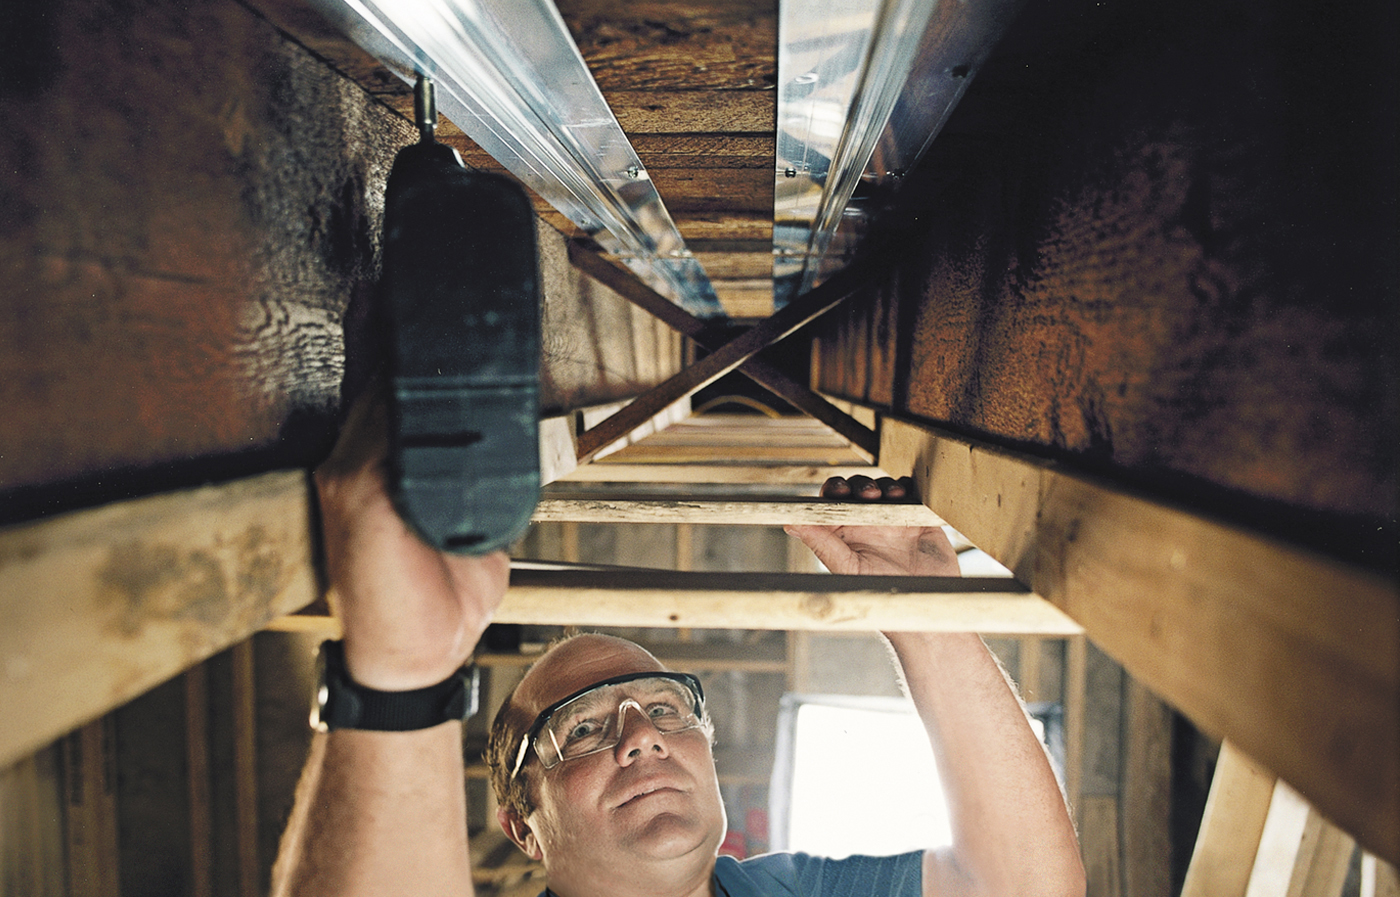 Man Screws Aluminum Track To Warm Radiant Tubing In House